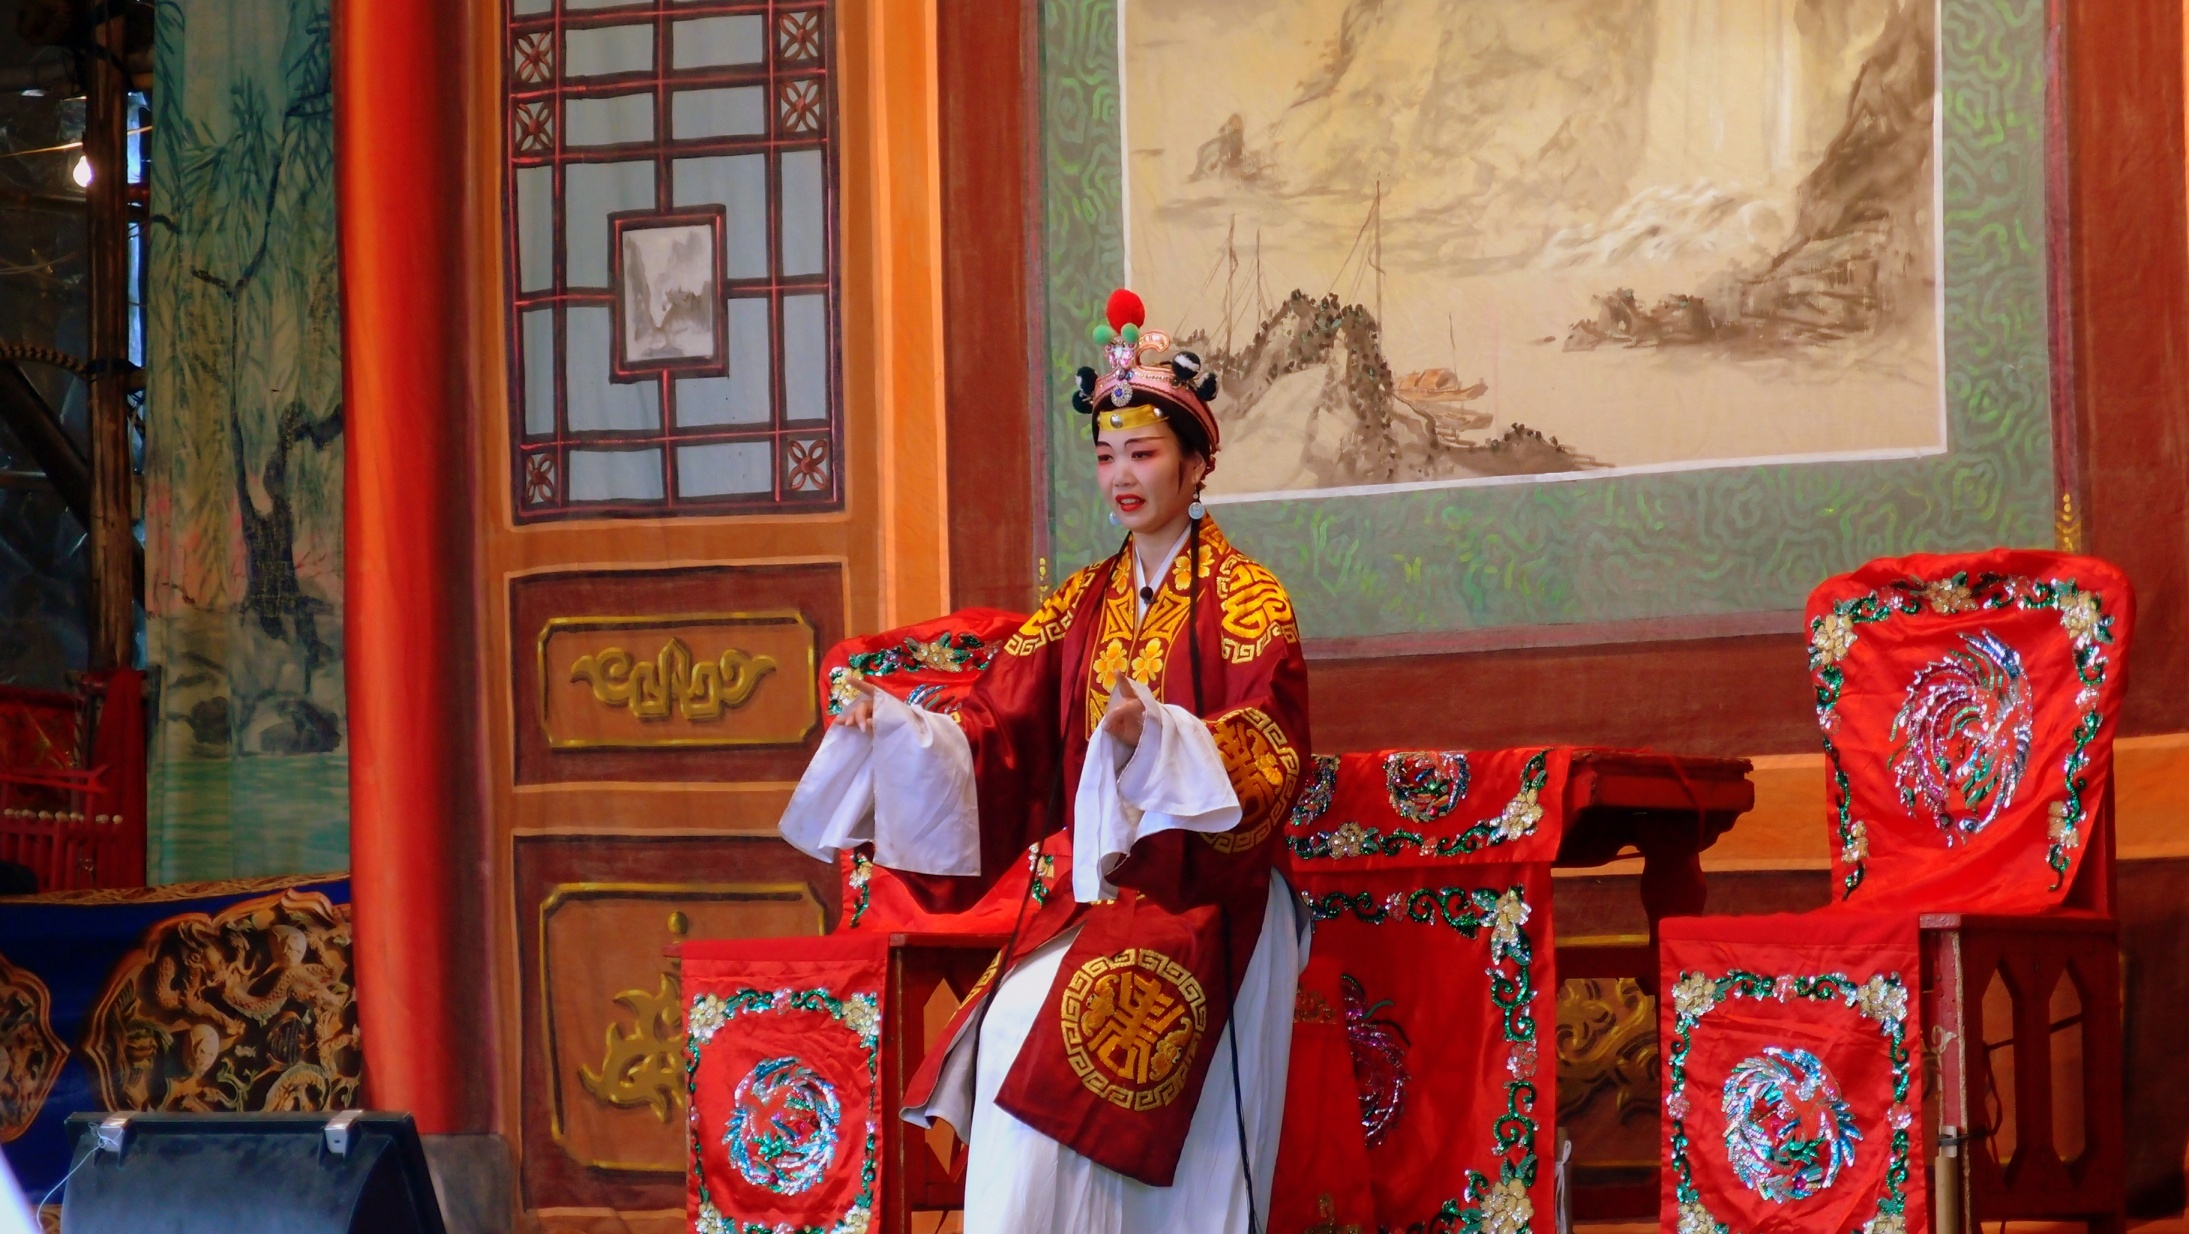 Chinese Opera - not my cup of tea